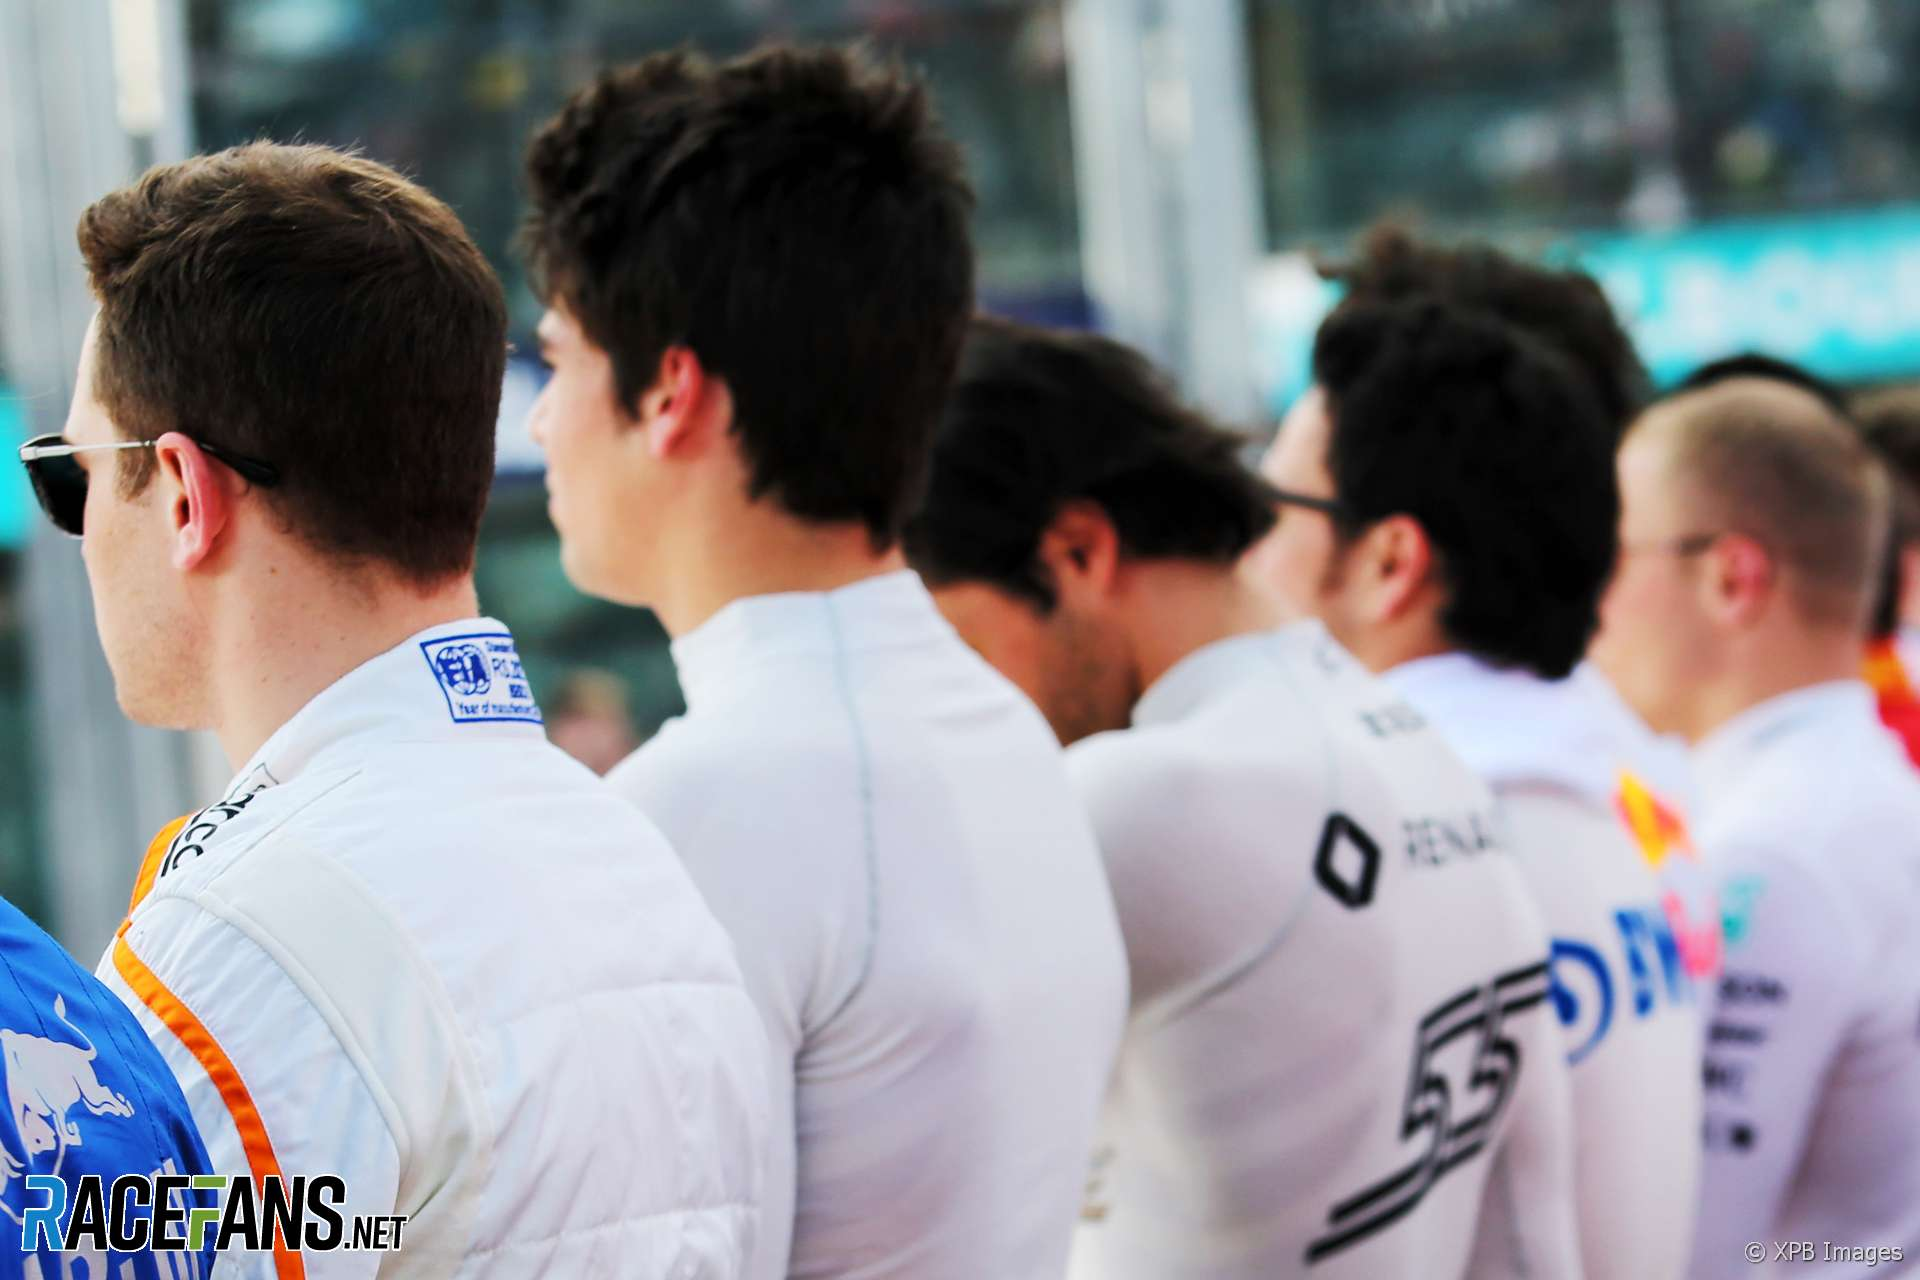 2019 f1 drivers, teams and engine suppliers - racefans